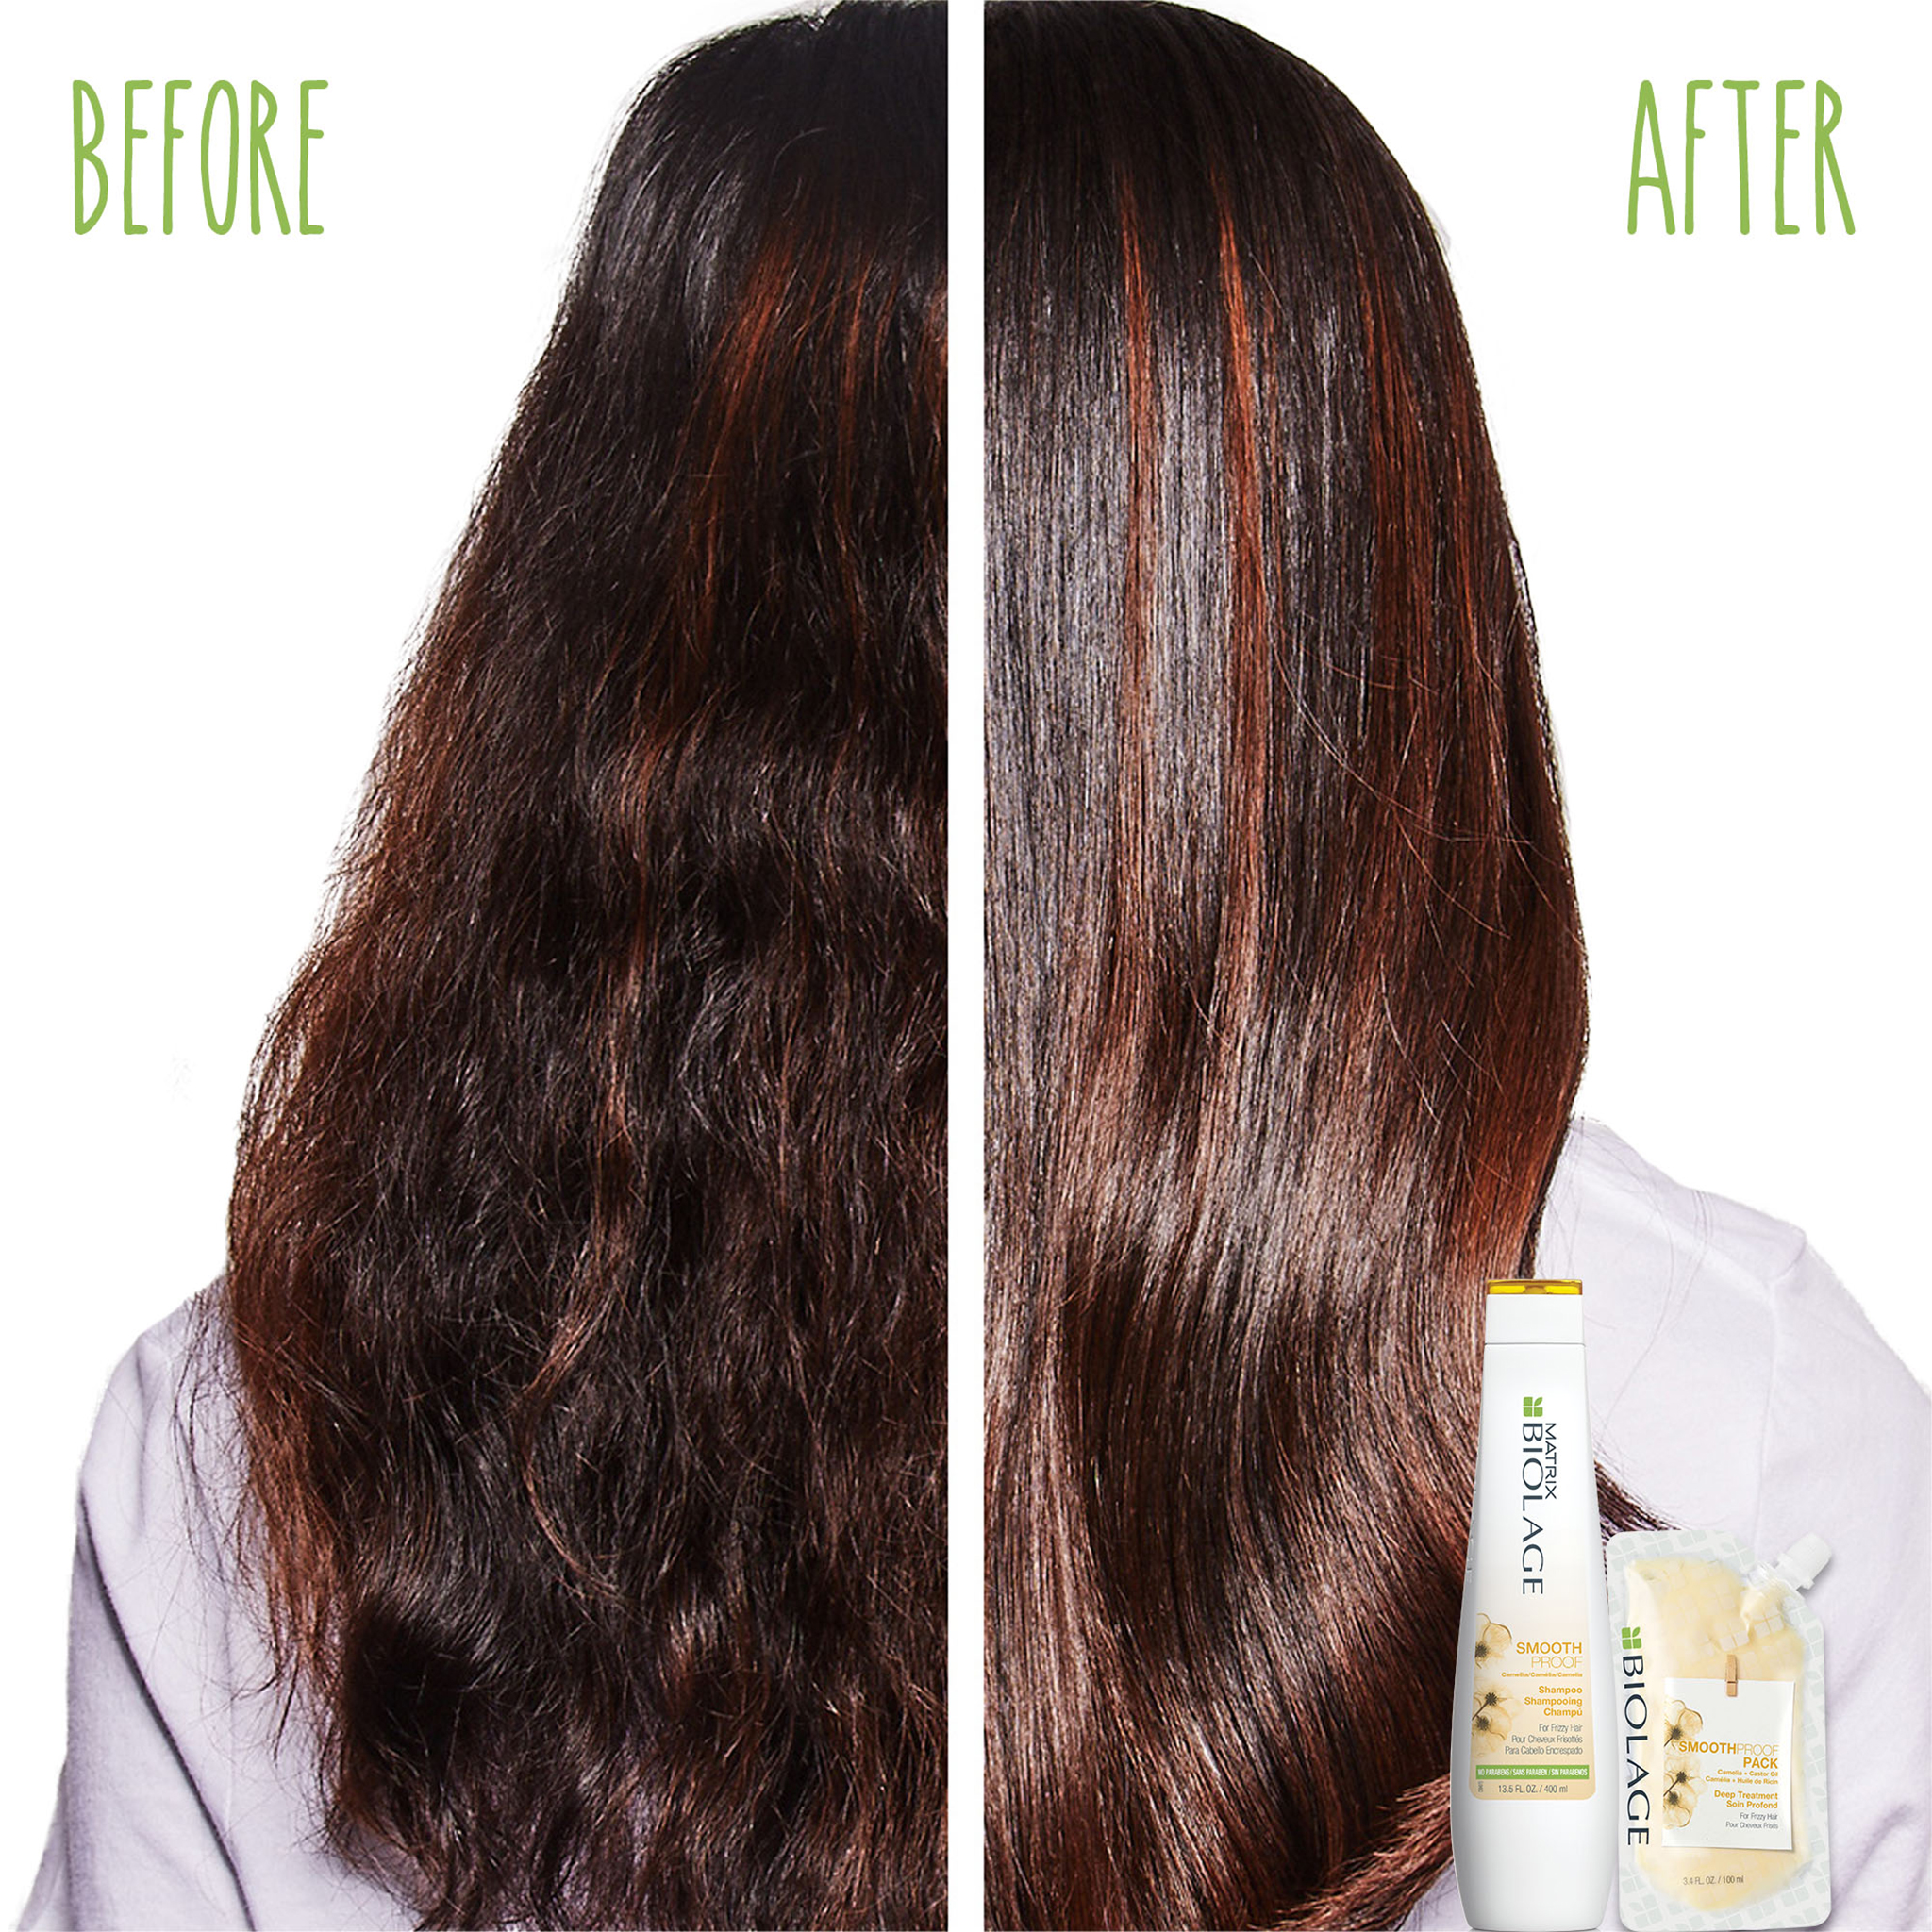 Biolage-Shampoo-Smooth-Proof-250-ml-2-000-3474630620926-BeforeAfter(2)